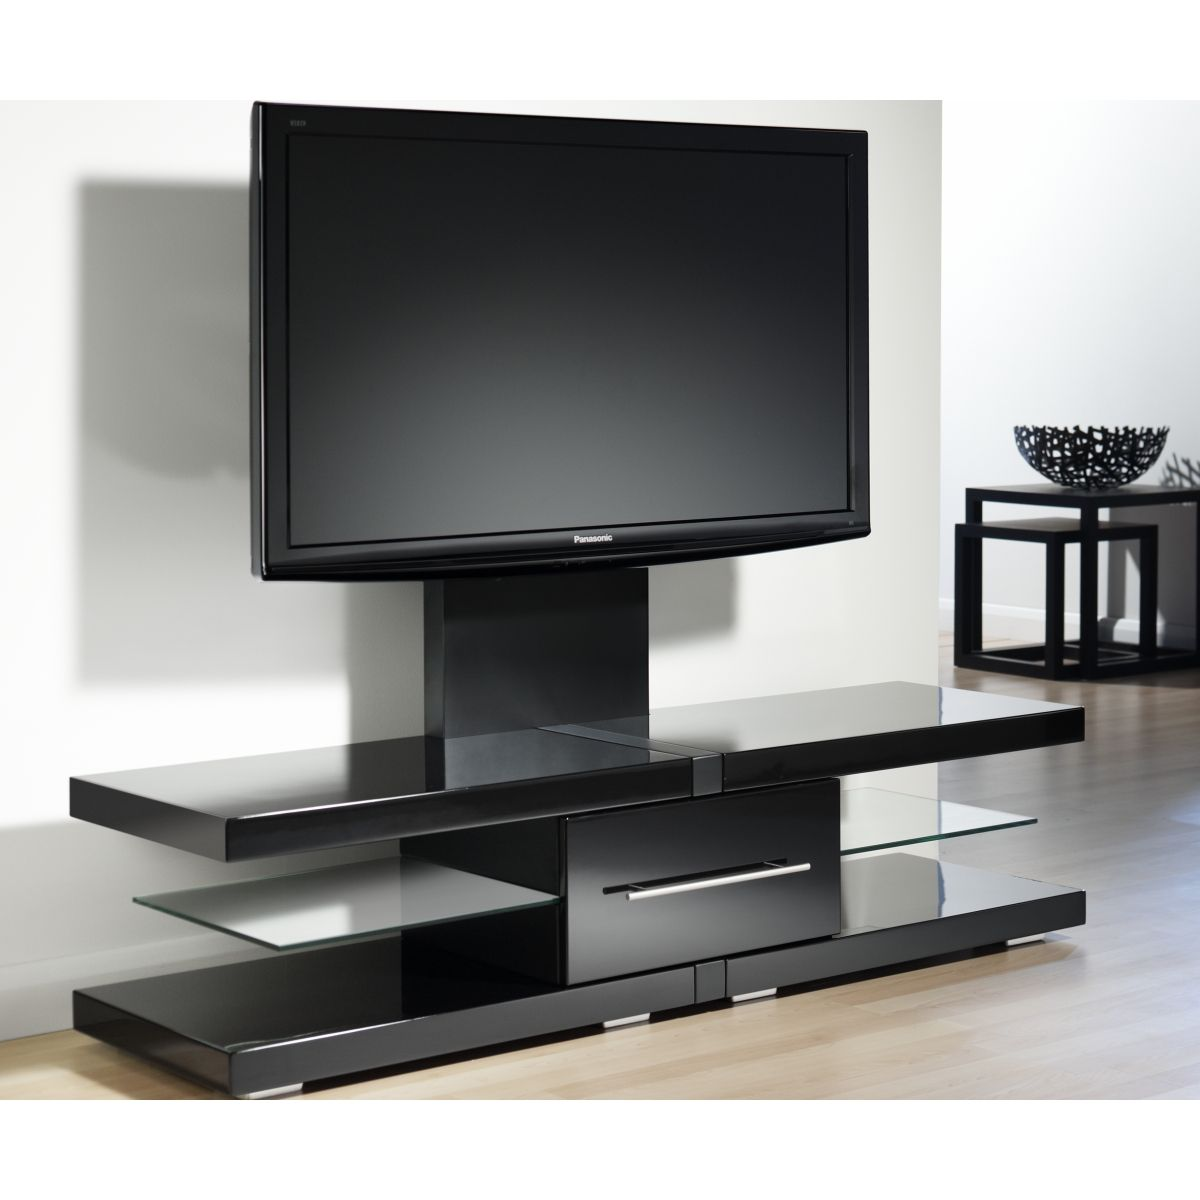 effigy of cool flat screen tv stands with mount. effigy of cool flat screen tv stands with mount  furniture